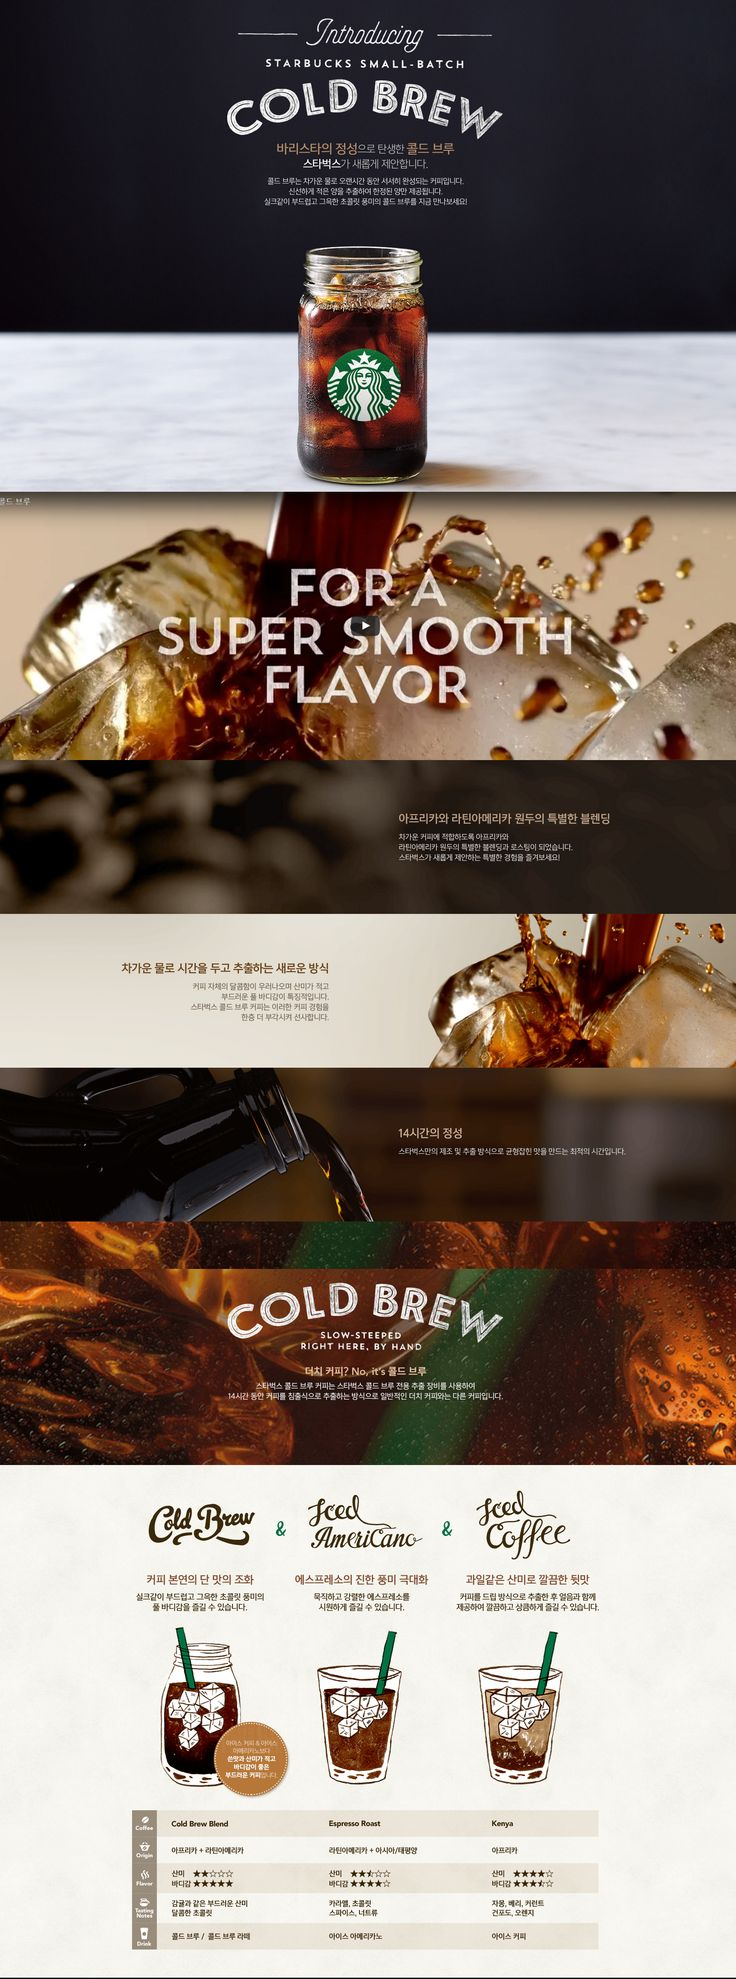 http://www.istarbucks.co.kr/store/store_coldbrew.do